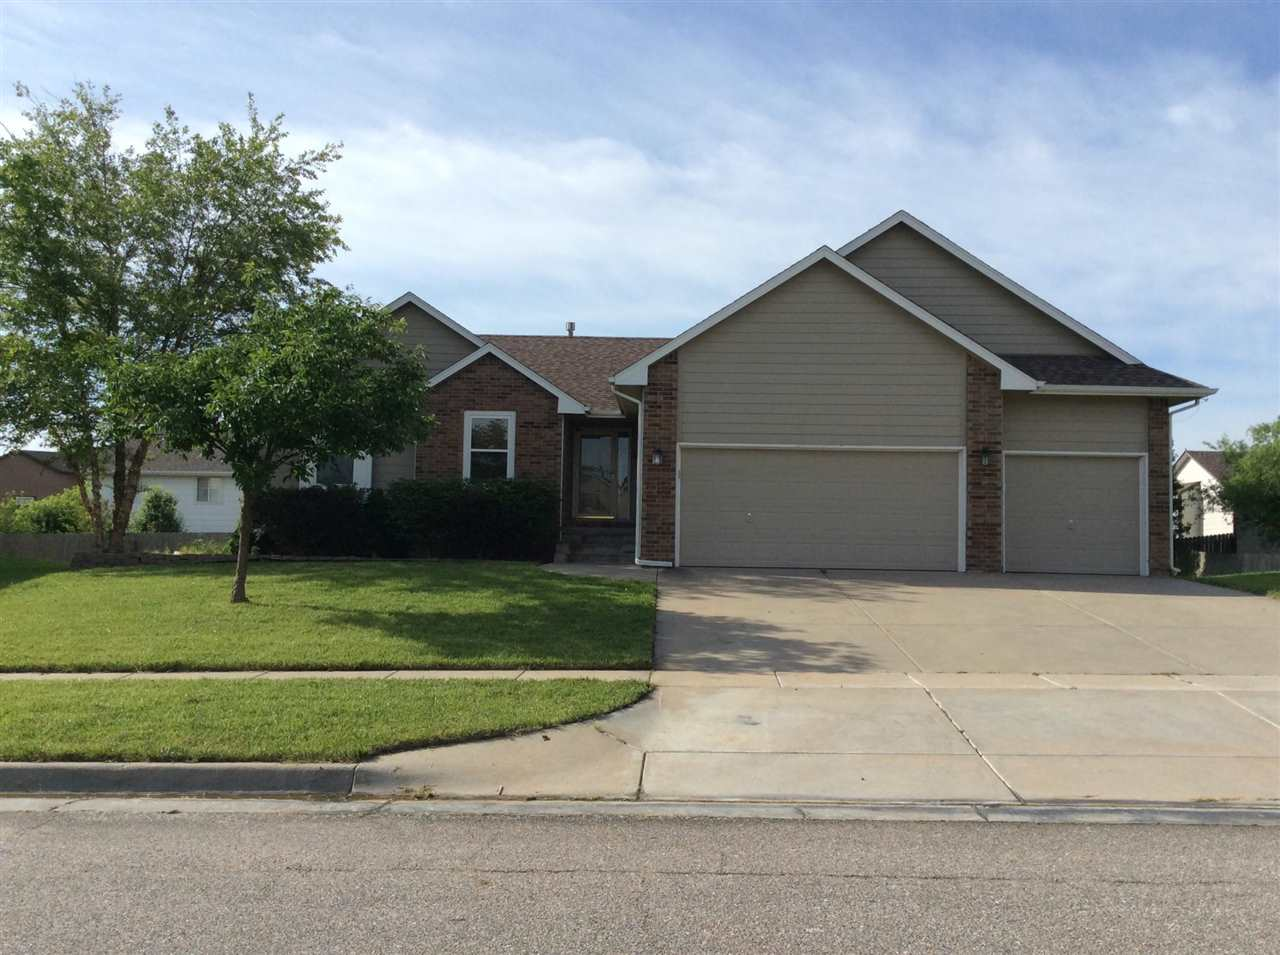 10511 E Mainsgate Rd, Wichita, KS 67226